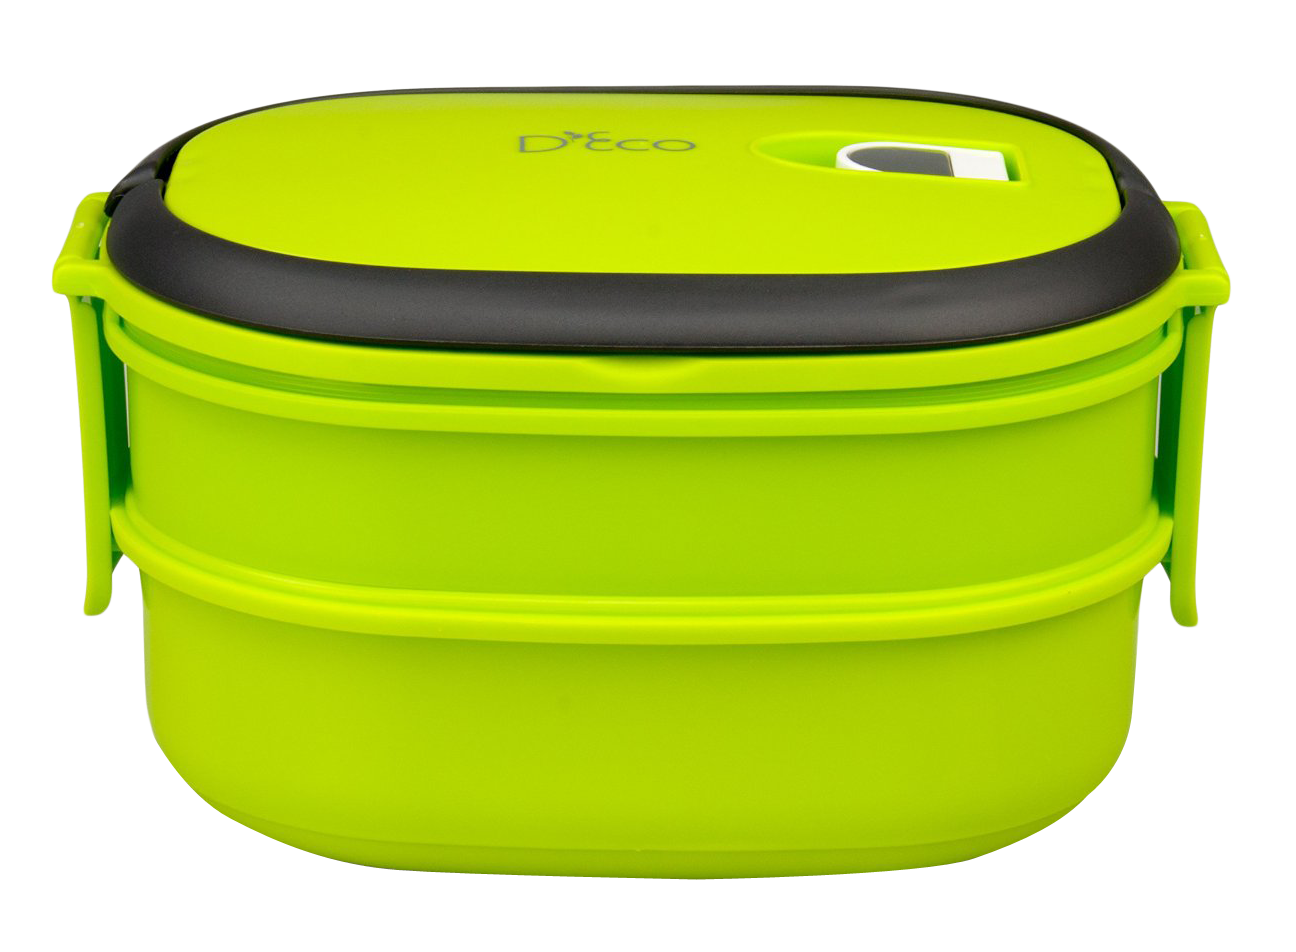 Lunch Box PNG Transparent Lunch Box